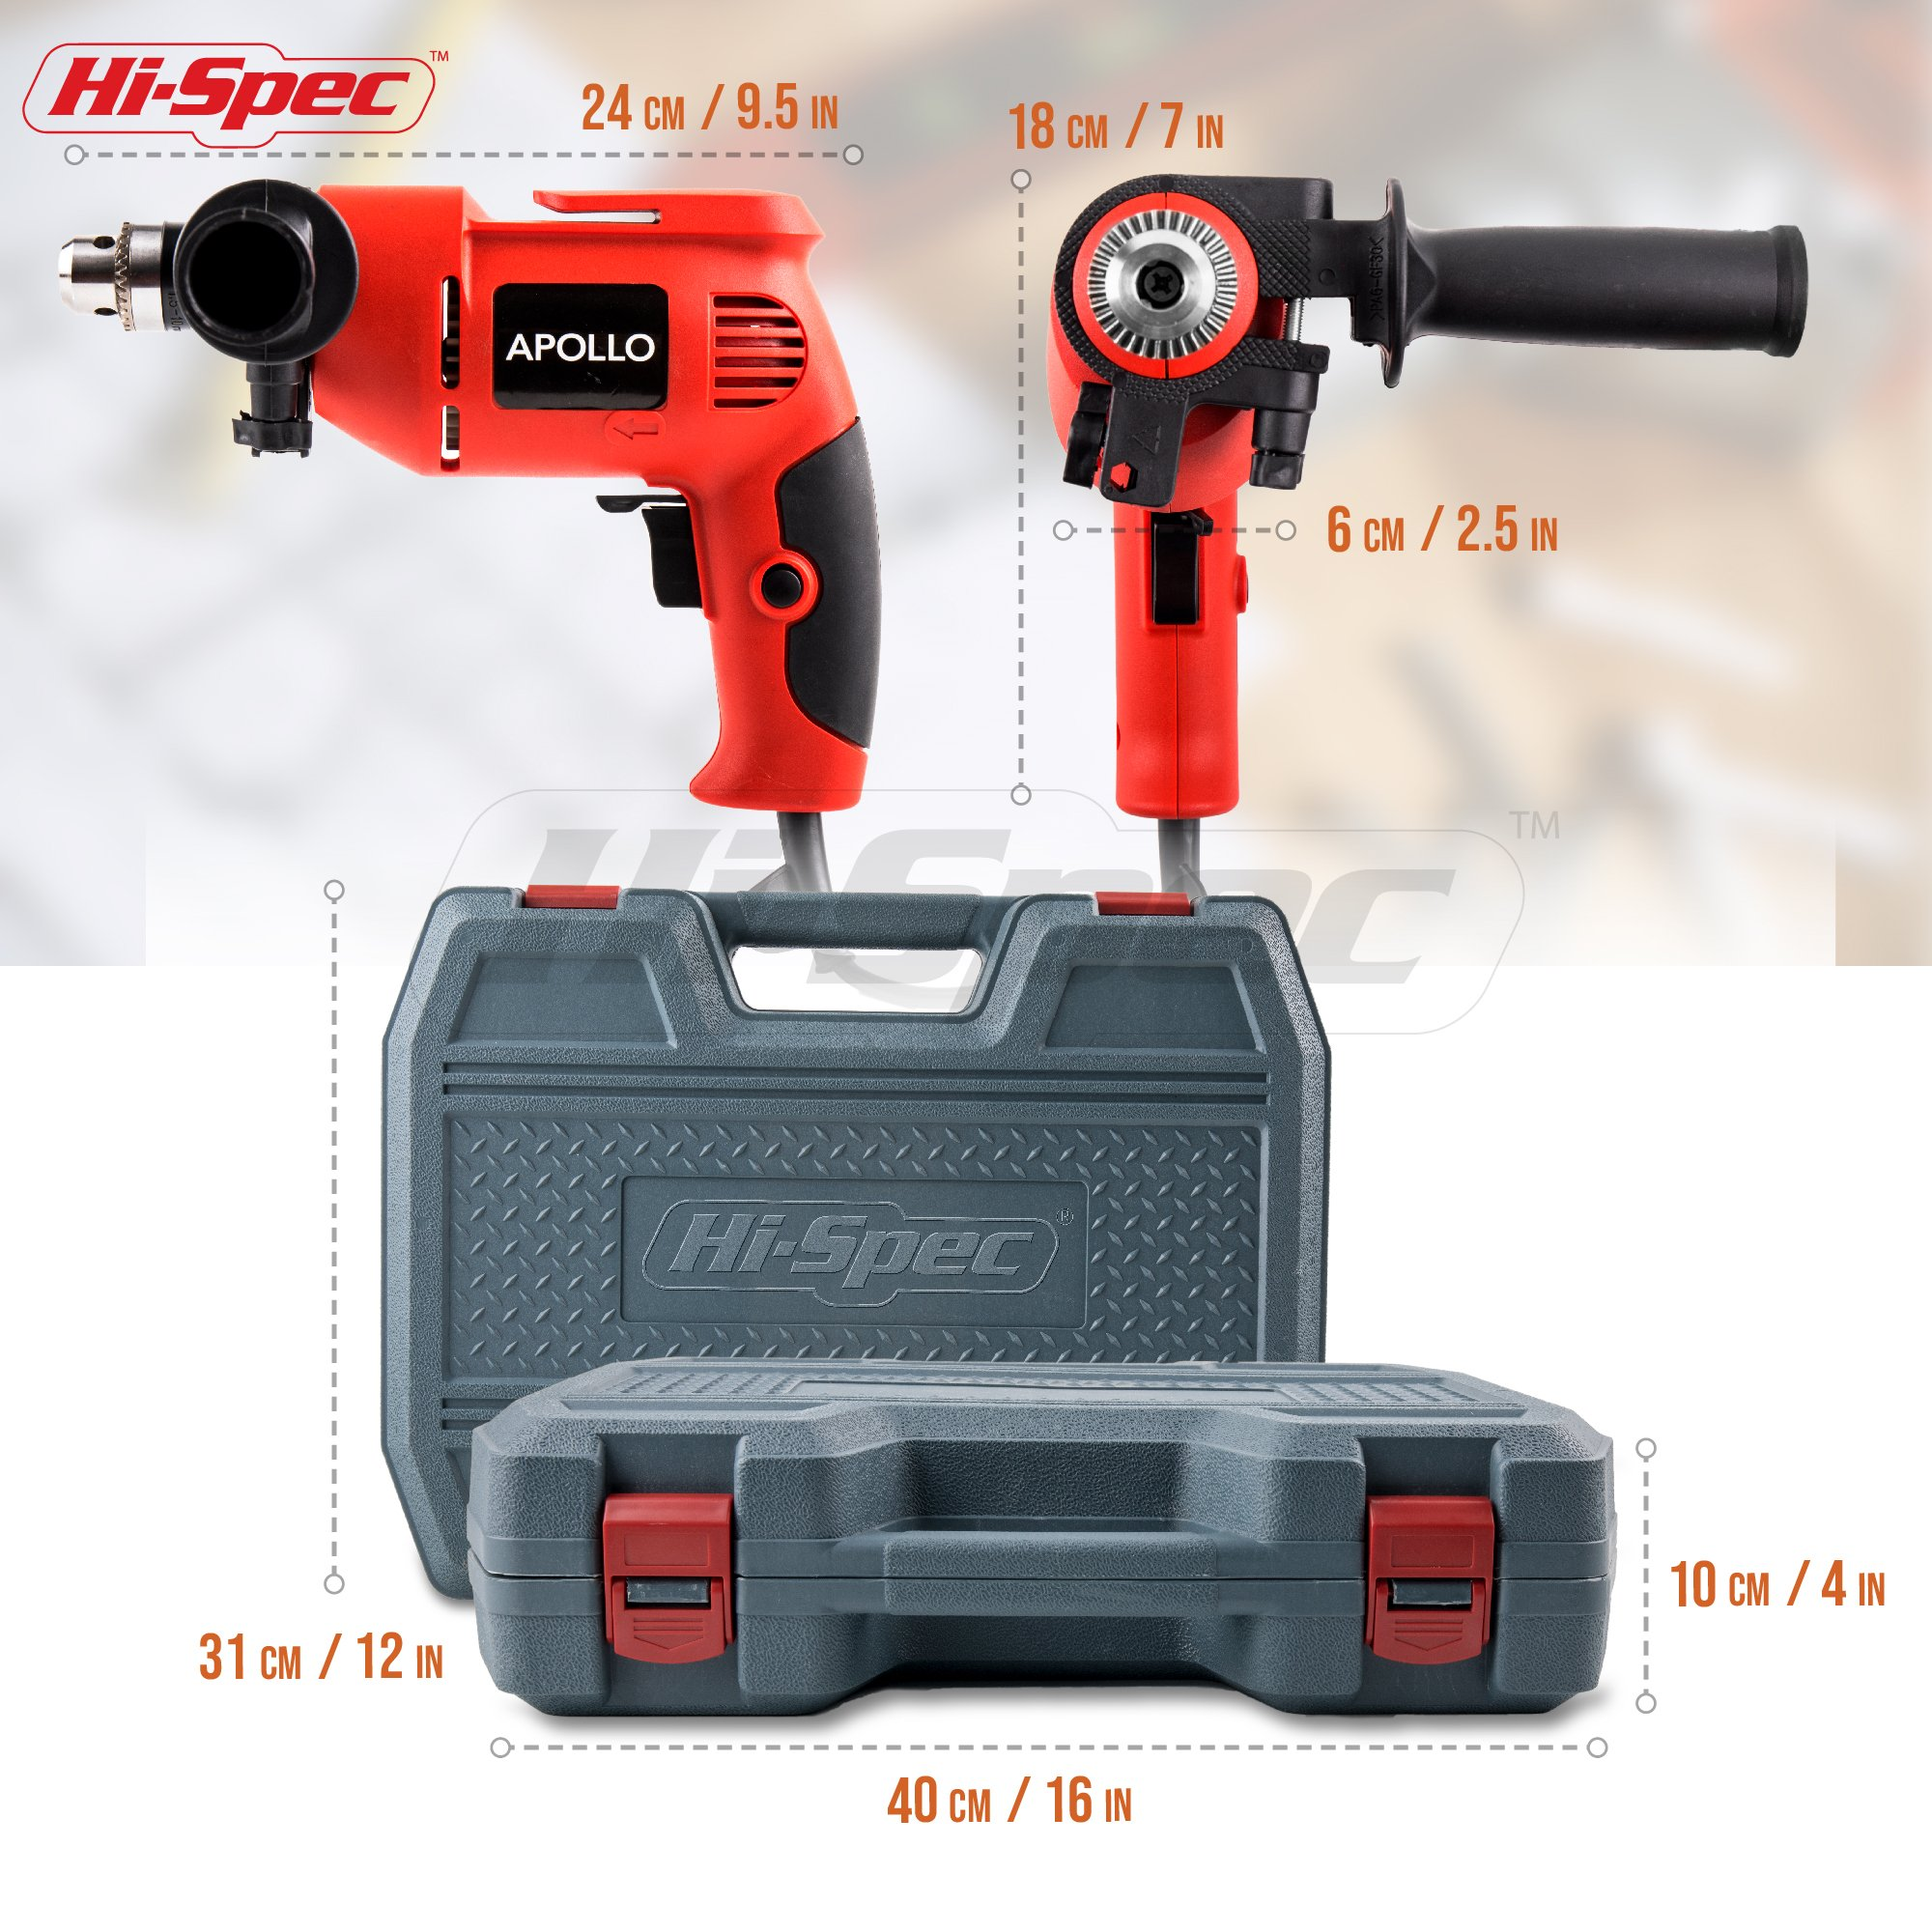 Hi-Spec Complete 130pc 110V 300W Hammer Power Drill & Hand Tool Set Combo Kit with Hacksaw, Pliers, Claw-Hammer, Wrench, Box Cutter, Hex Keys, Screwdrivers, Socket and Driver Bits, Voltage Tester Case by Hi-Spec (Image #4)